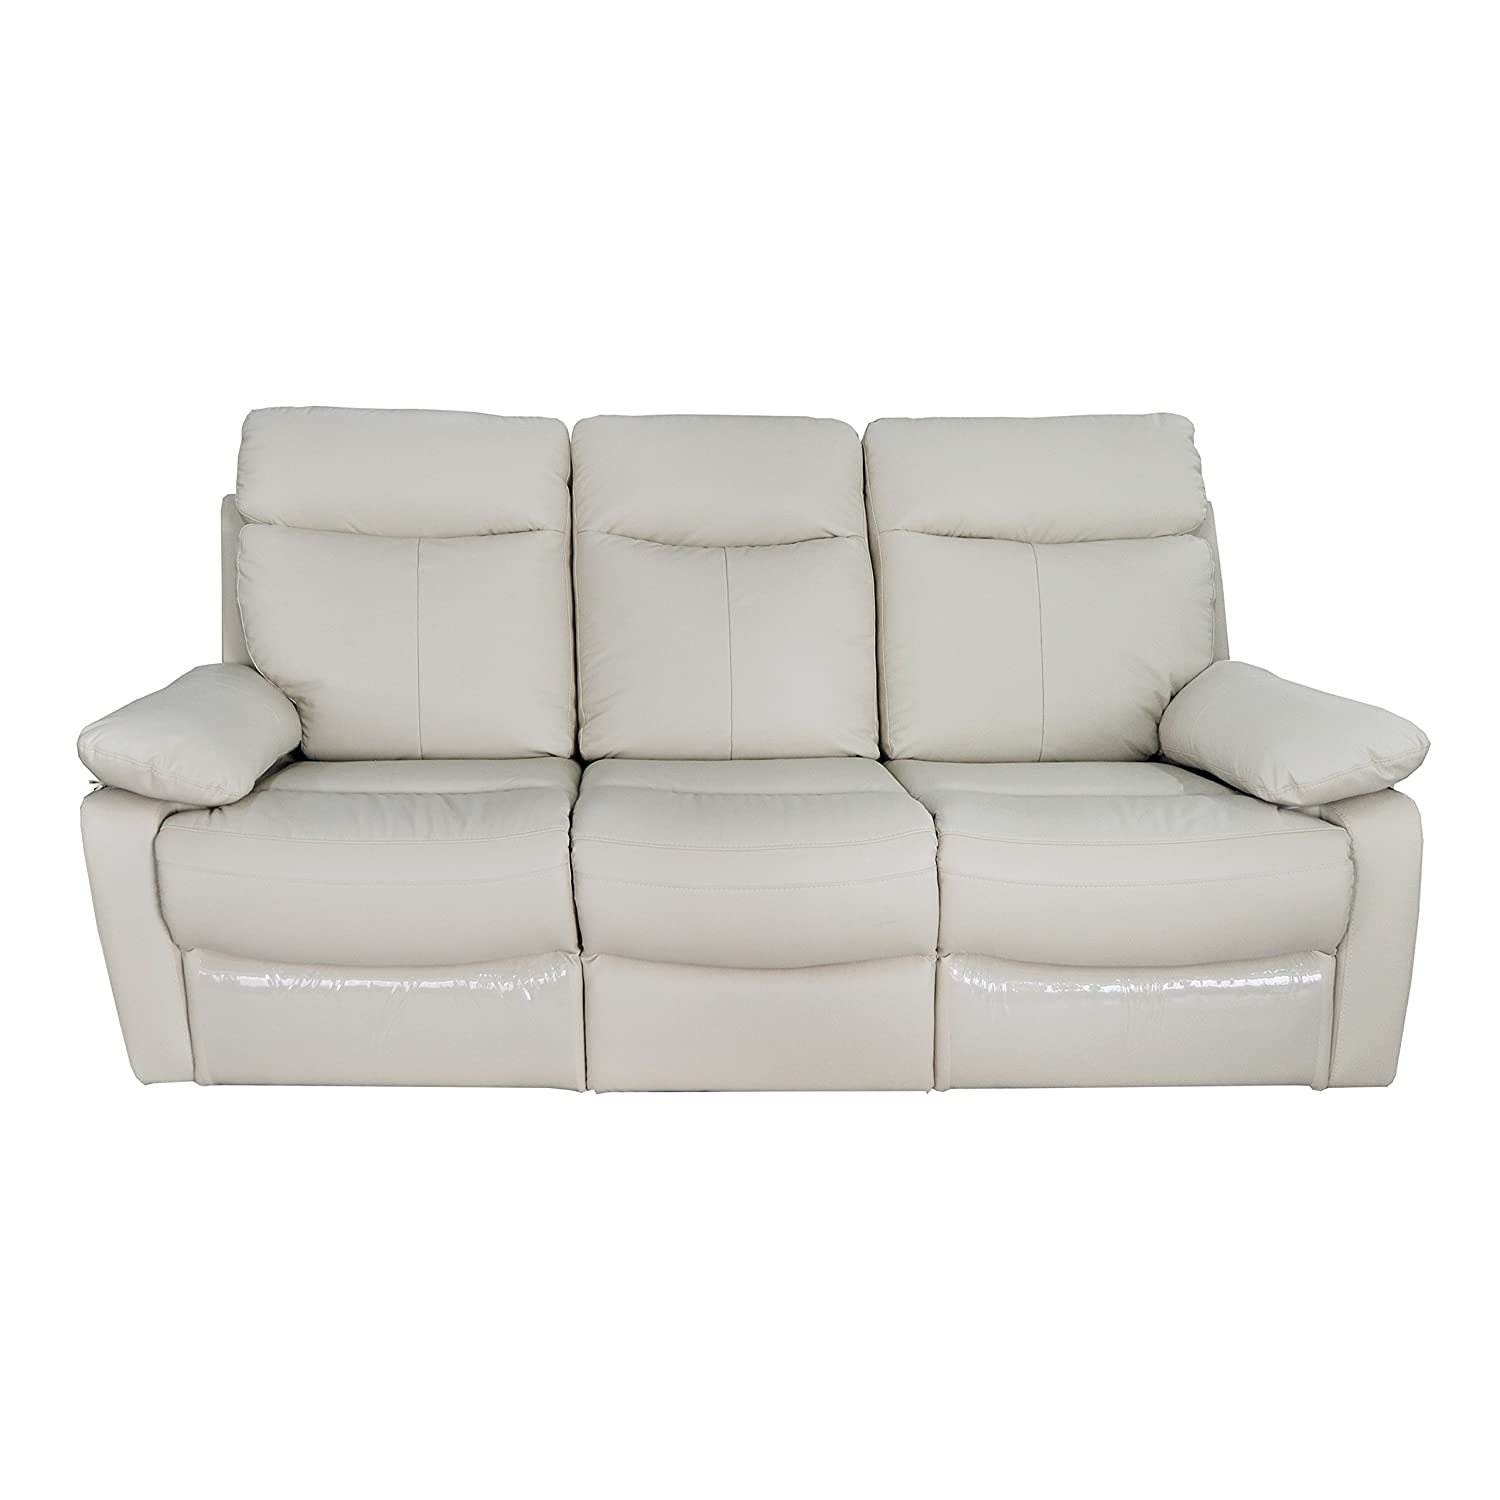 Christies Home Living Ryker-Taupe-DRS Leather Contemporary Reclining Sofa